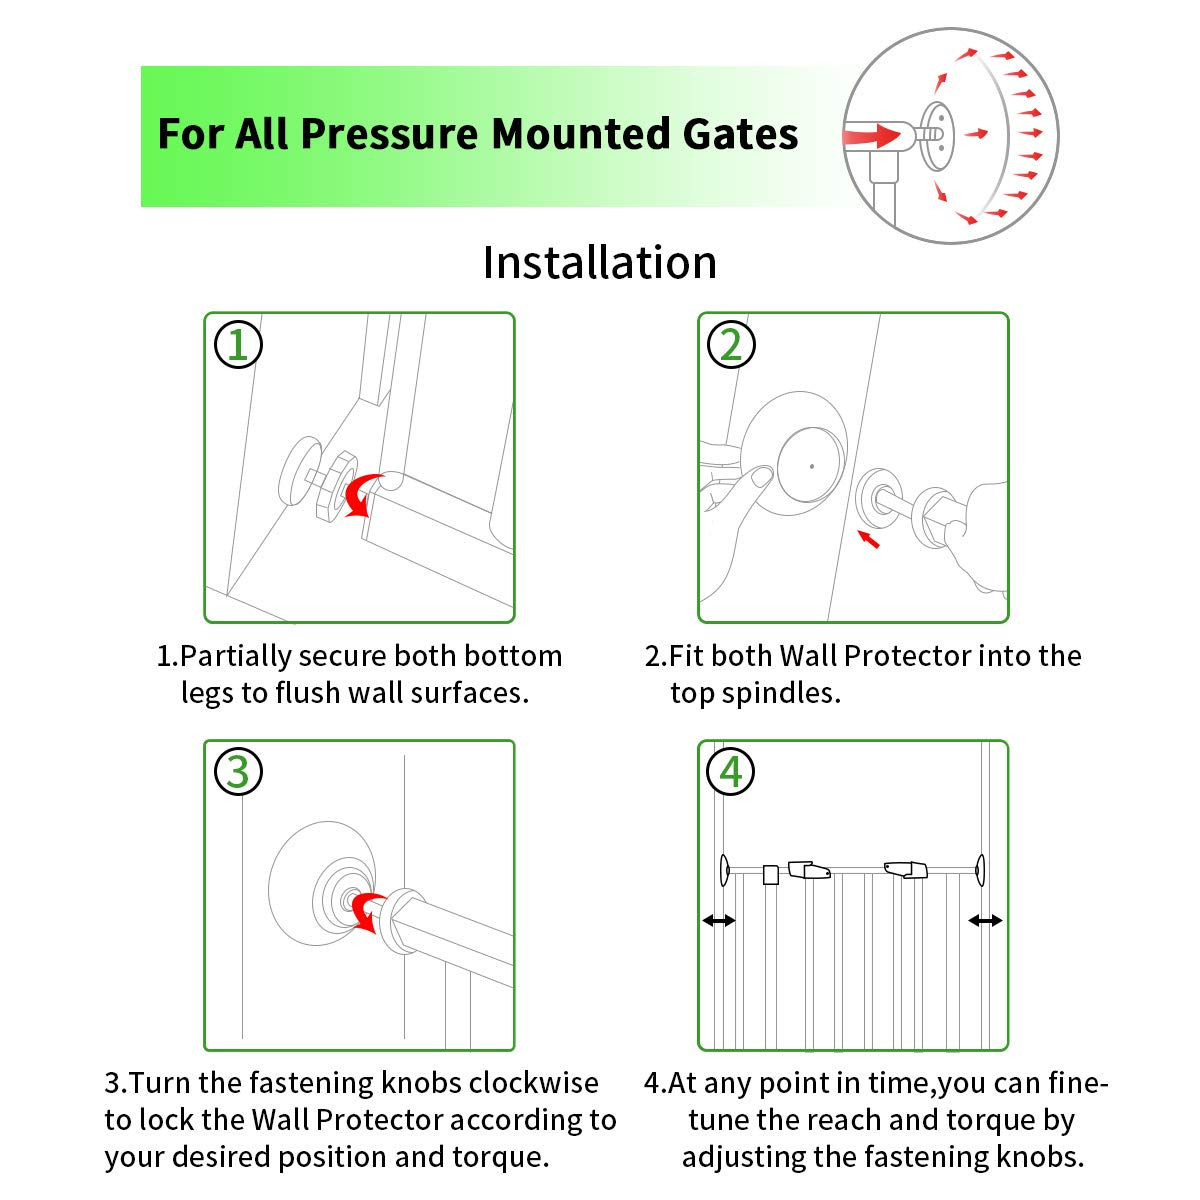 LATME Baby Gate Wall Protector Make Pressure Mounted Safety Indoor Gates More Stable-Wall Damage-Free Fit for Bottom of Gates Doorway Stairs Baseboard Work with Dog Pet Child Gates (White, Round) by LATME (Image #3)